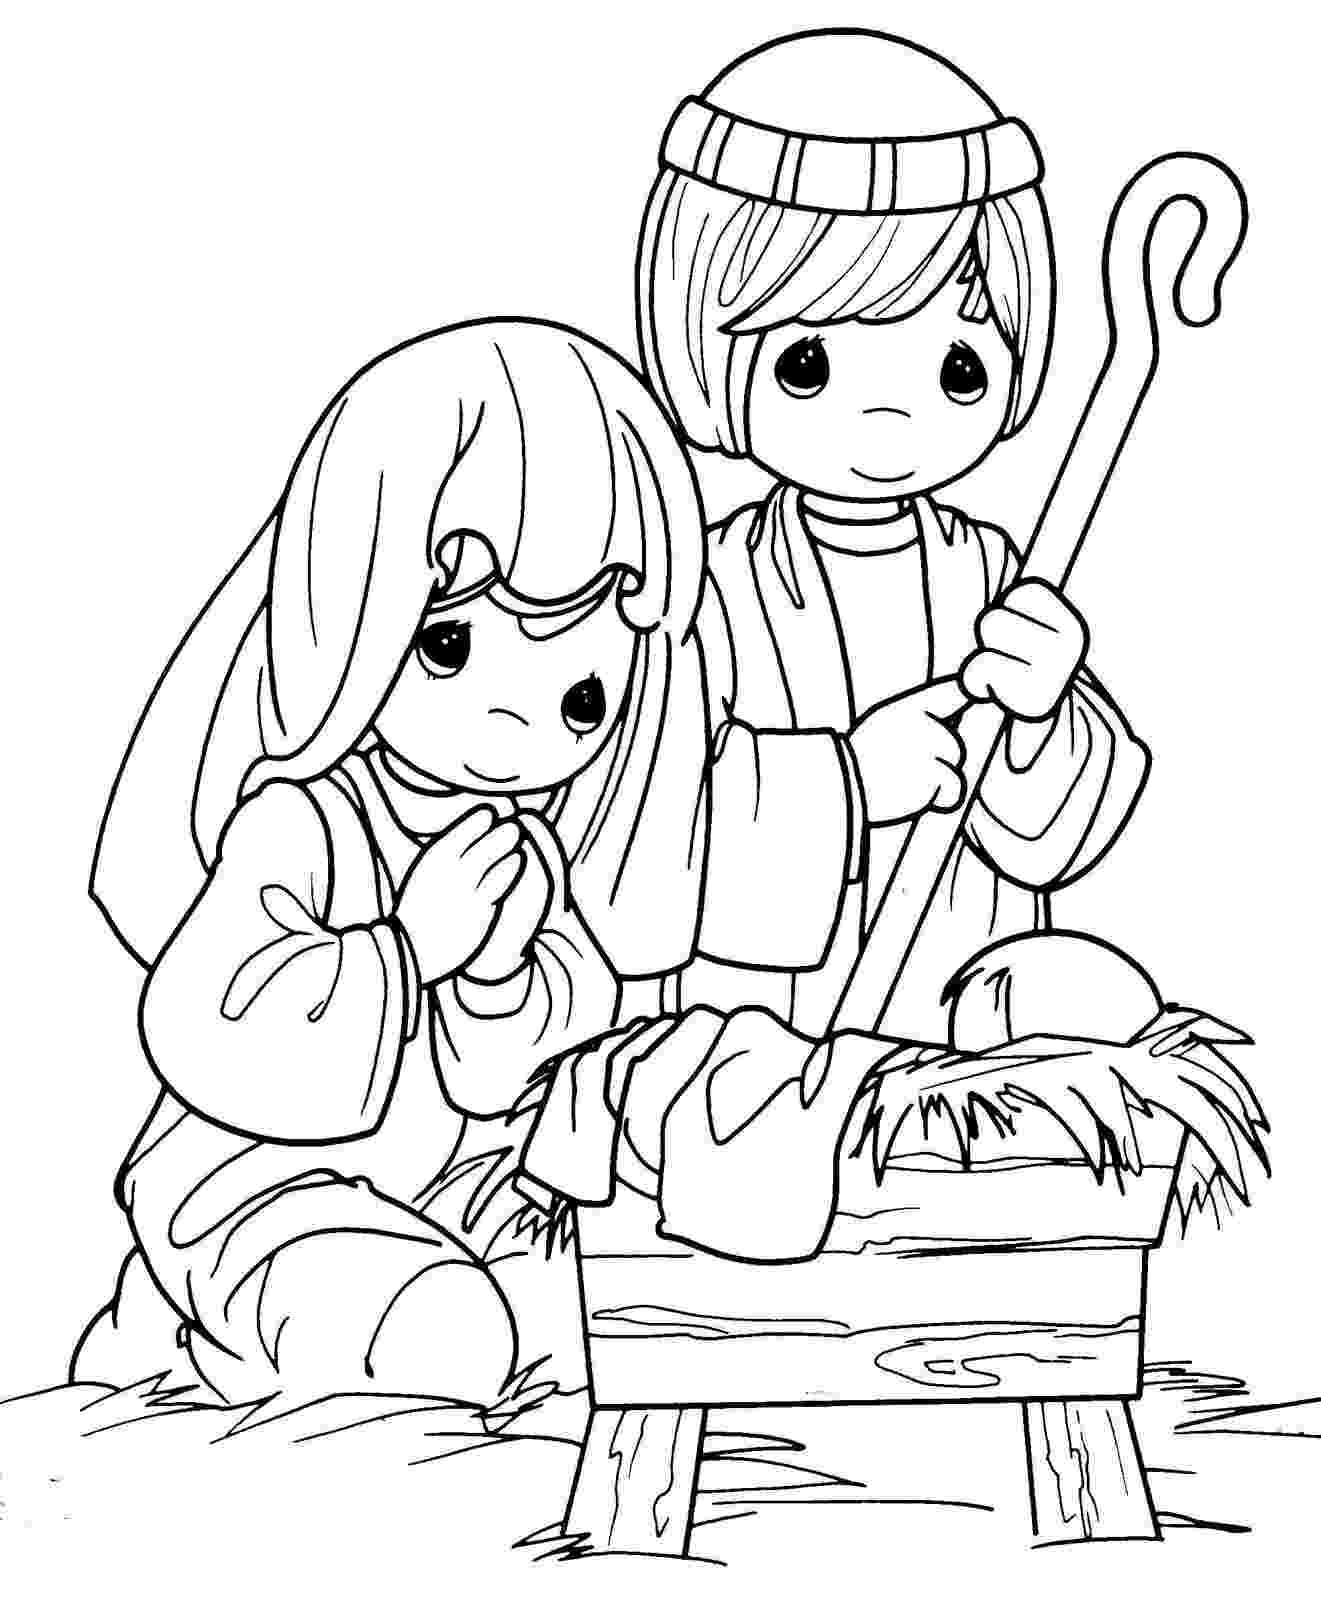 baby jesus in a manger coloring pages baby jesus in a manger in nativity coloring page color luna baby manger a jesus pages coloring in